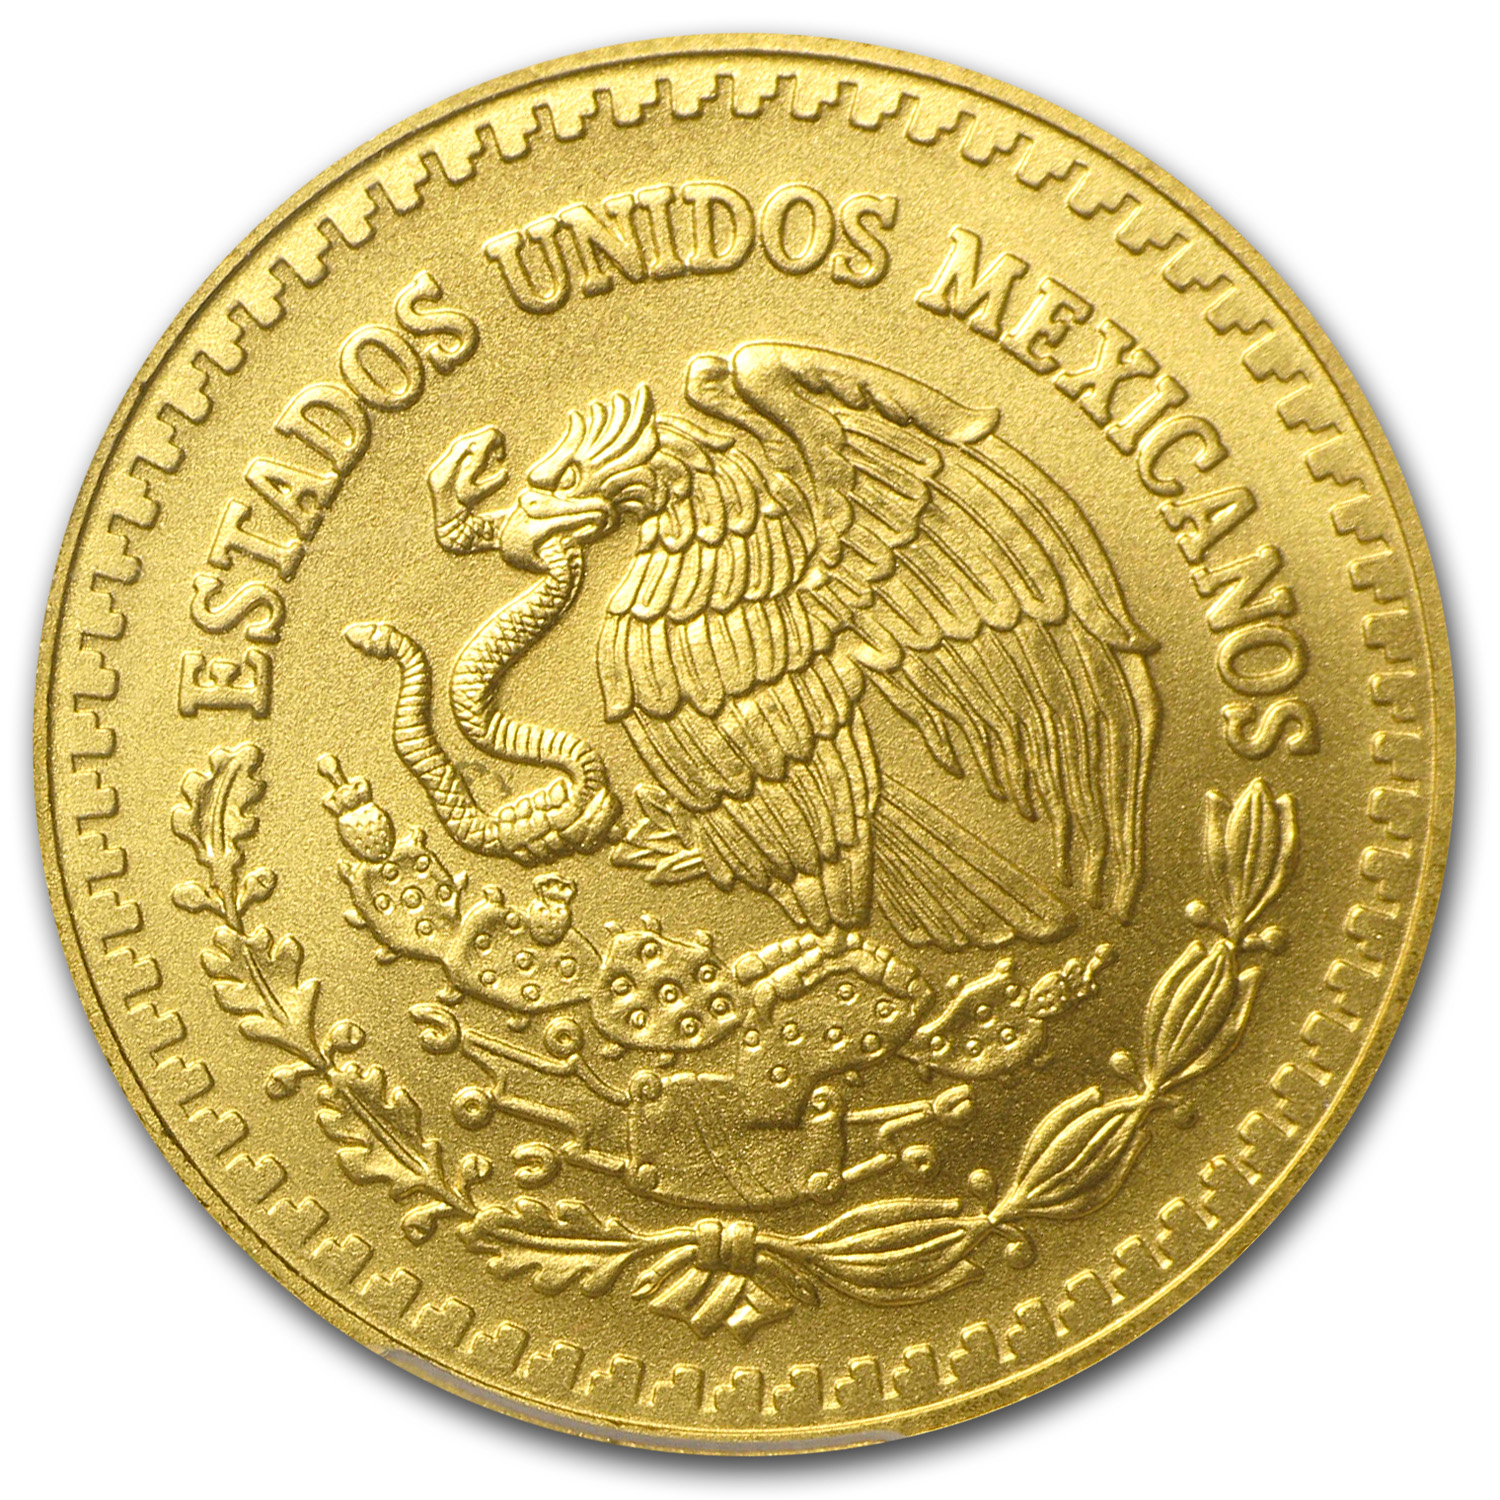 2014 Mexico 1/2 oz Gold Libertad MS-69 PCGS